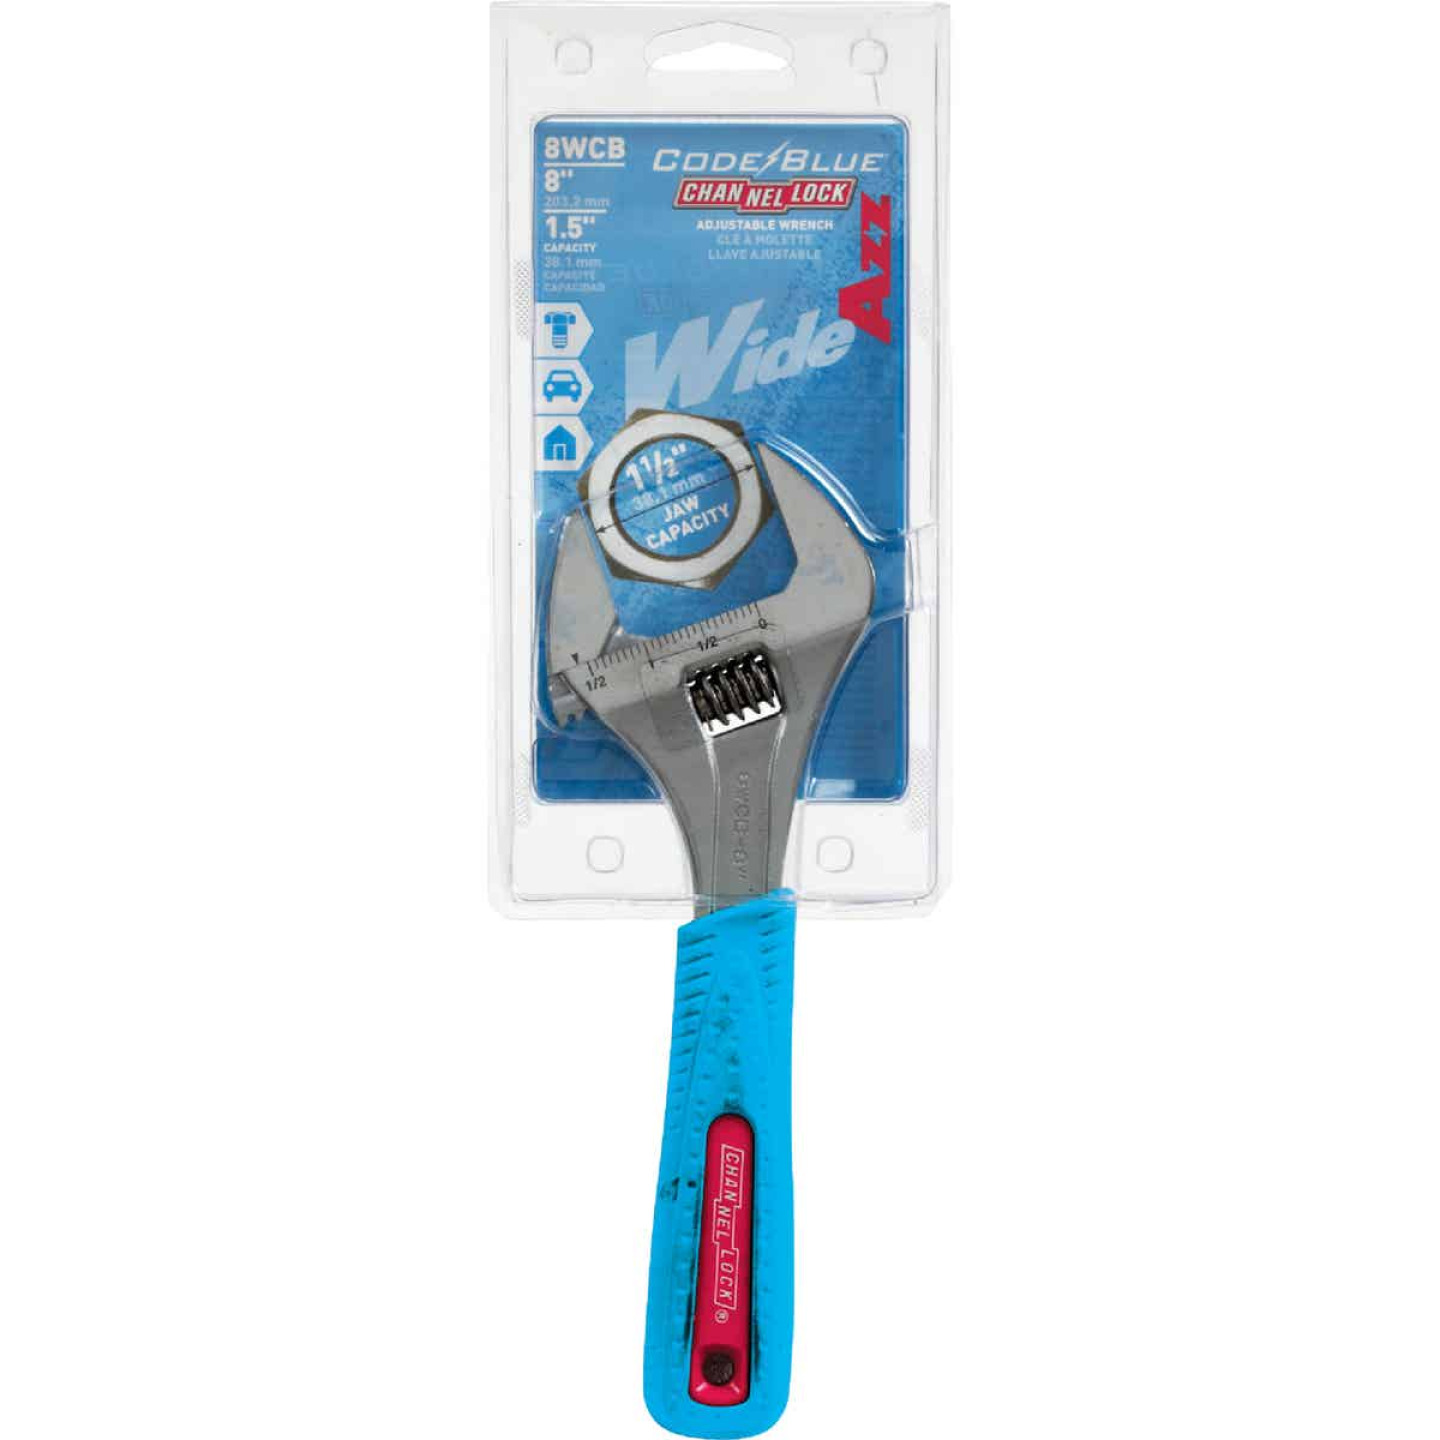 Channellock Code Blue 8 In. Wide Jaw Adjustable Wrench Image 2